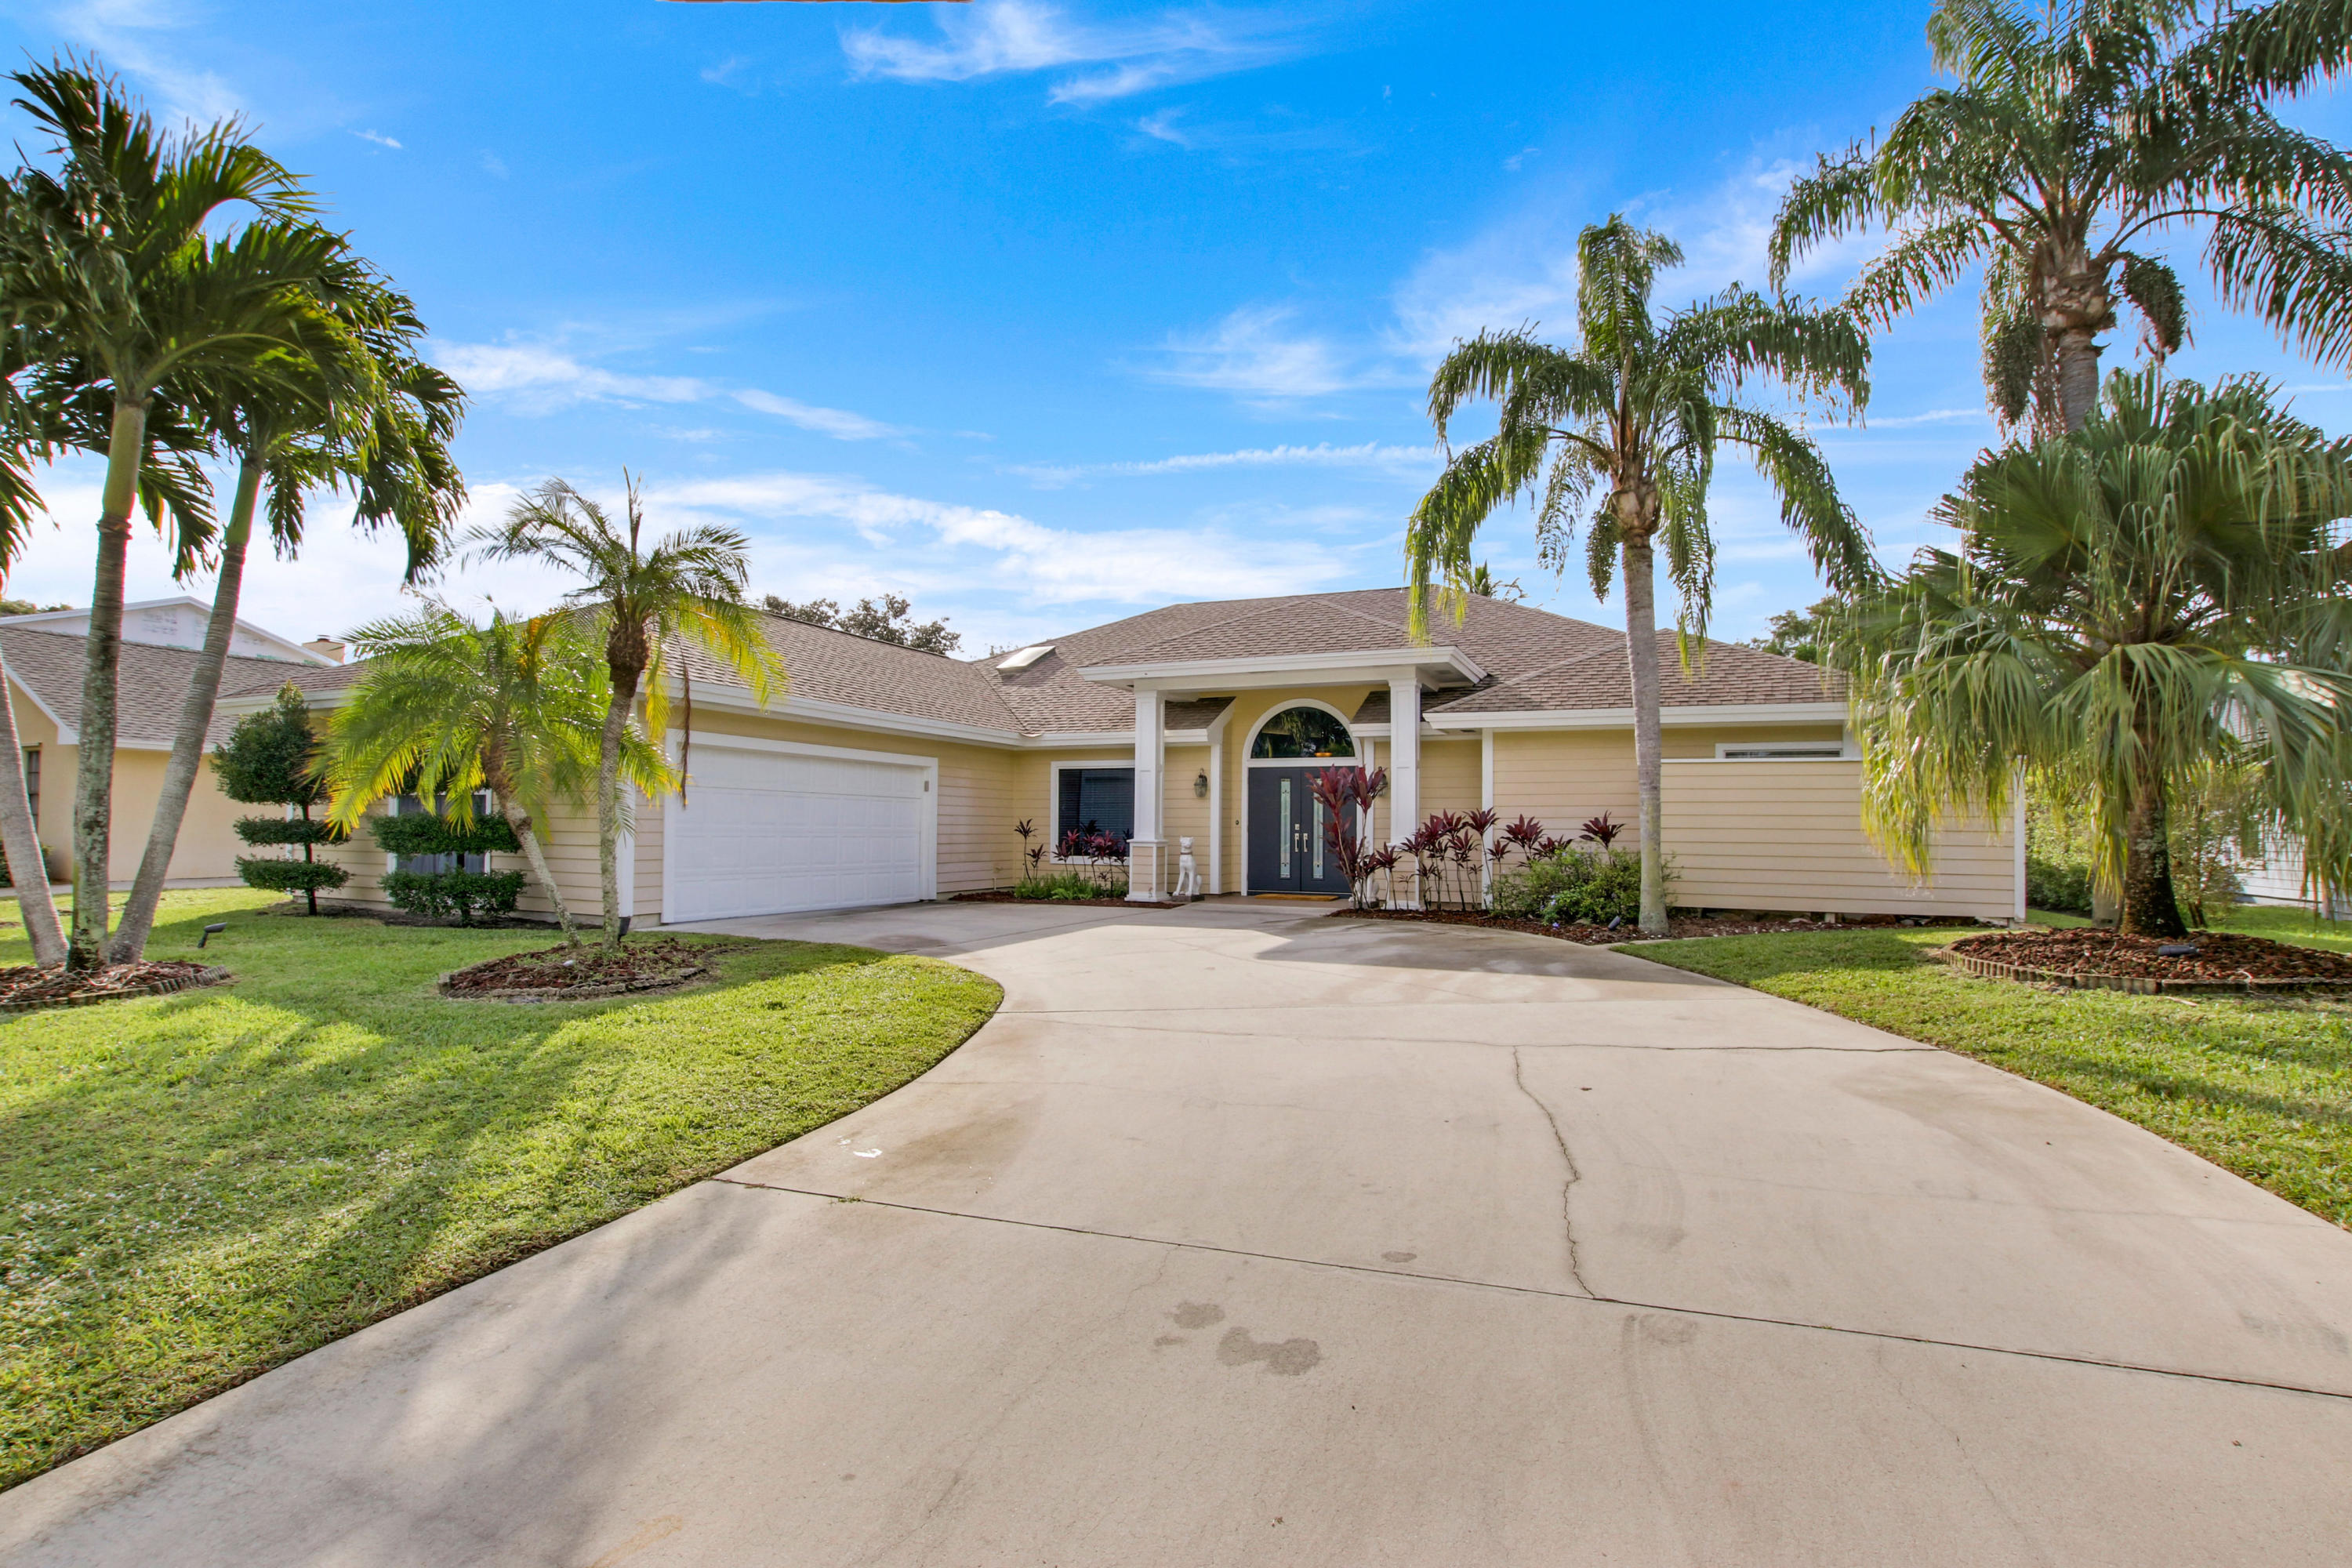 10840 Seminole Terrace, Tequesta, Florida 33469, 4 Bedrooms Bedrooms, ,2.1 BathroomsBathrooms,A,Single family,Seminole,RX-10483967